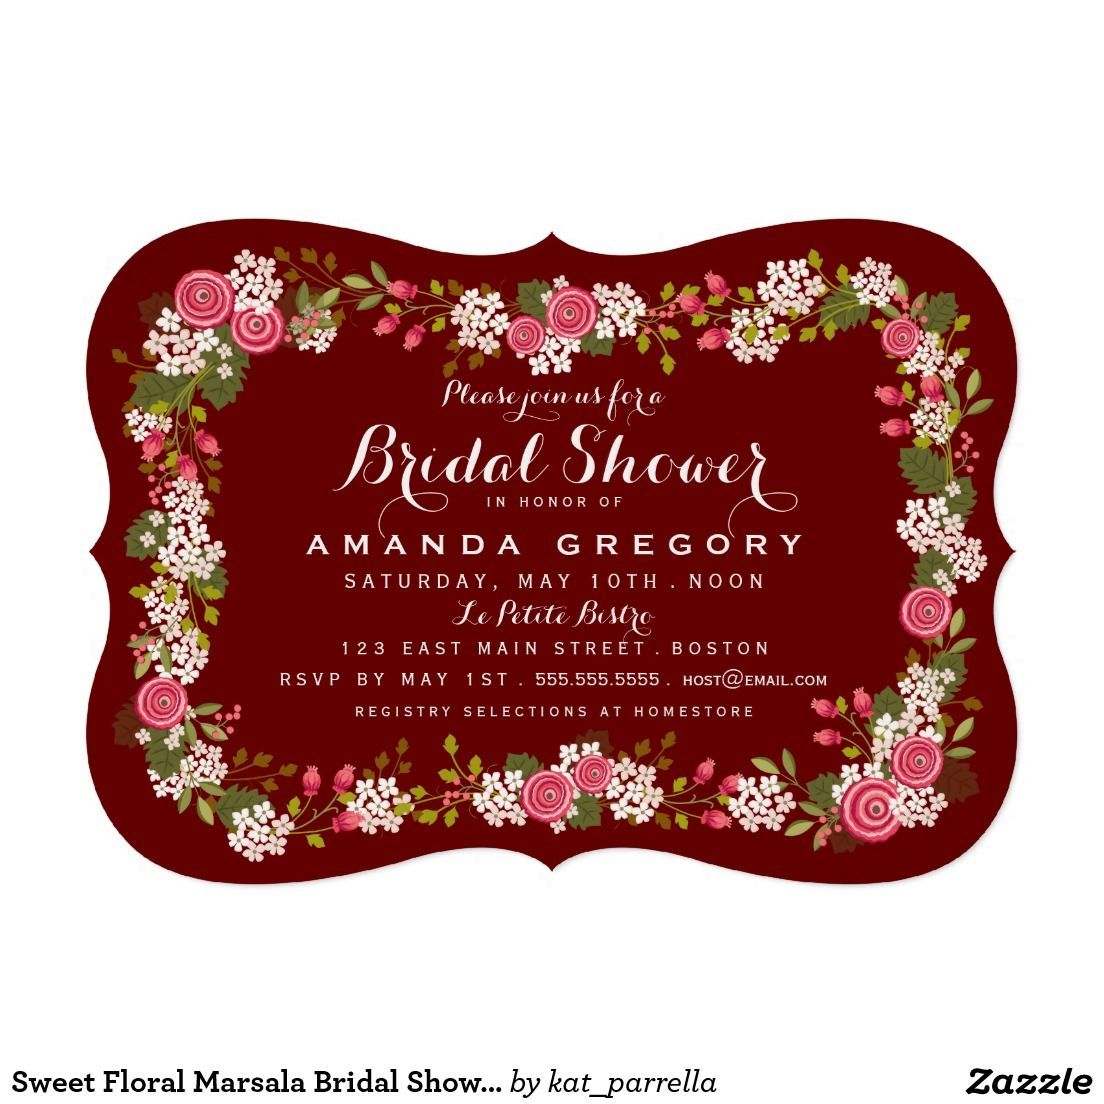 Sweet Floral Marsala Bridal Shower Invitation | SPRING WEDDING ...